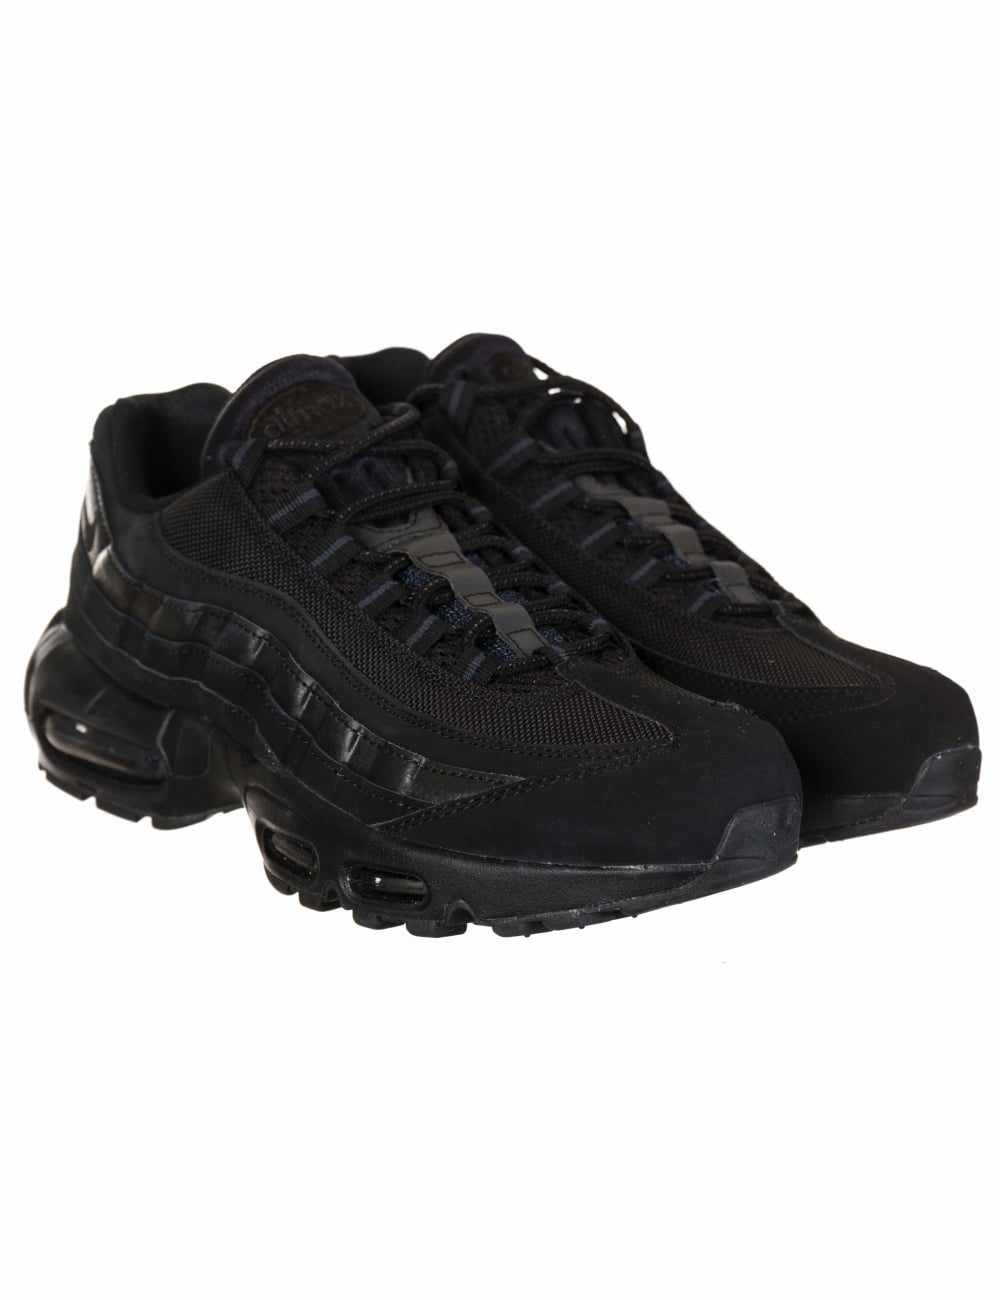 best website 160bf a0d1d Air Max 95 Shoes - Black Black